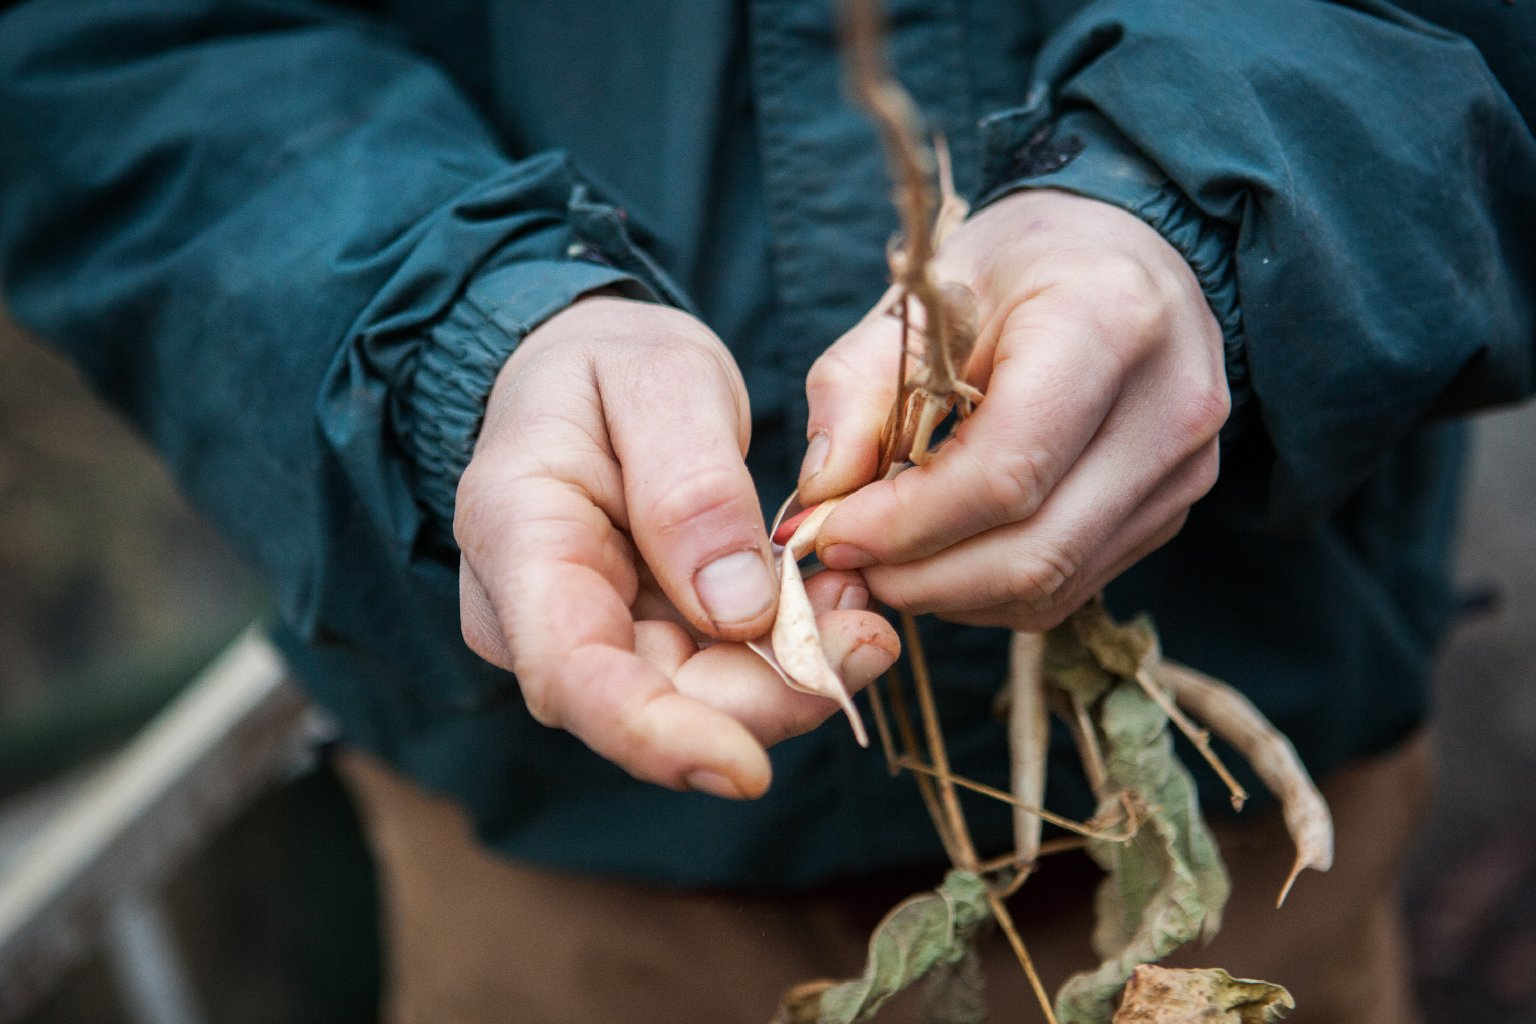 Guerre breaks open a dried red kidney bean stalk. Photo: Zac Visco for NPR